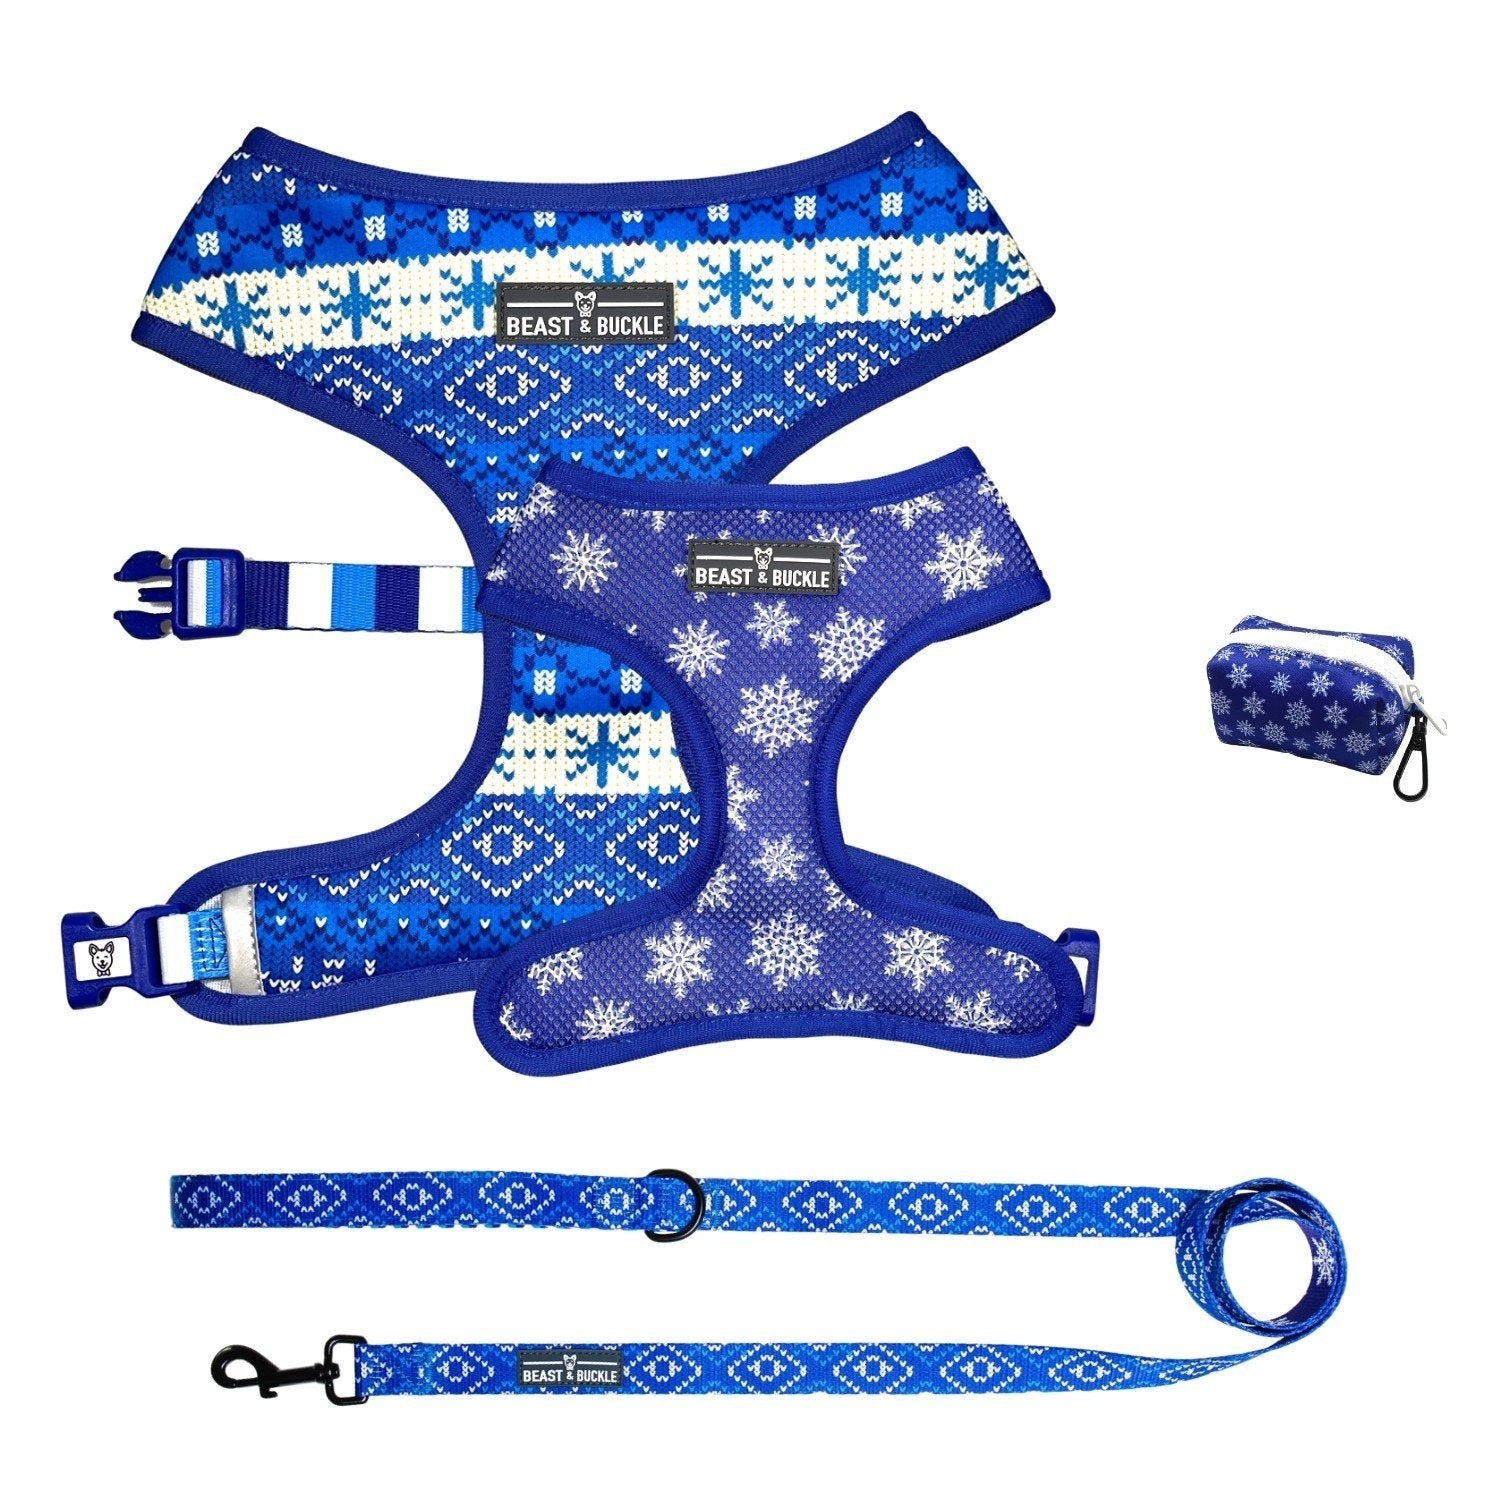 Winter Walking Bundle - Beast & Buckle